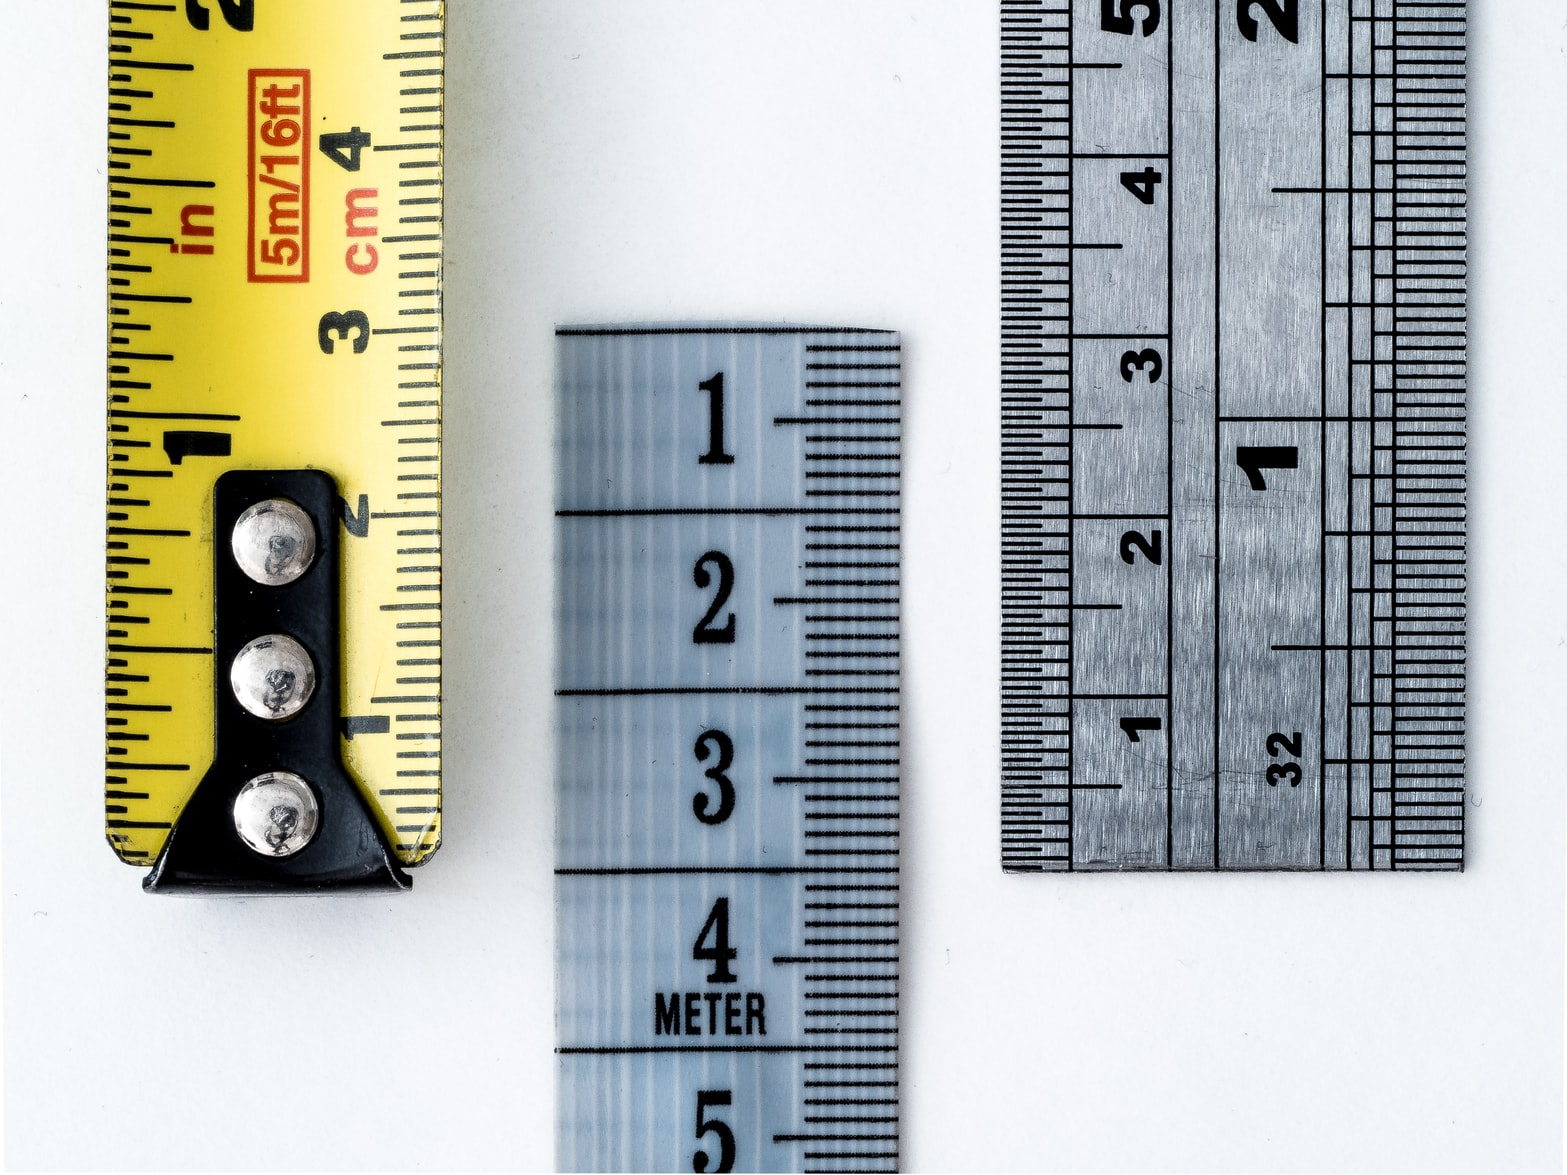 Clearing the Confusion Around Brand Measurement